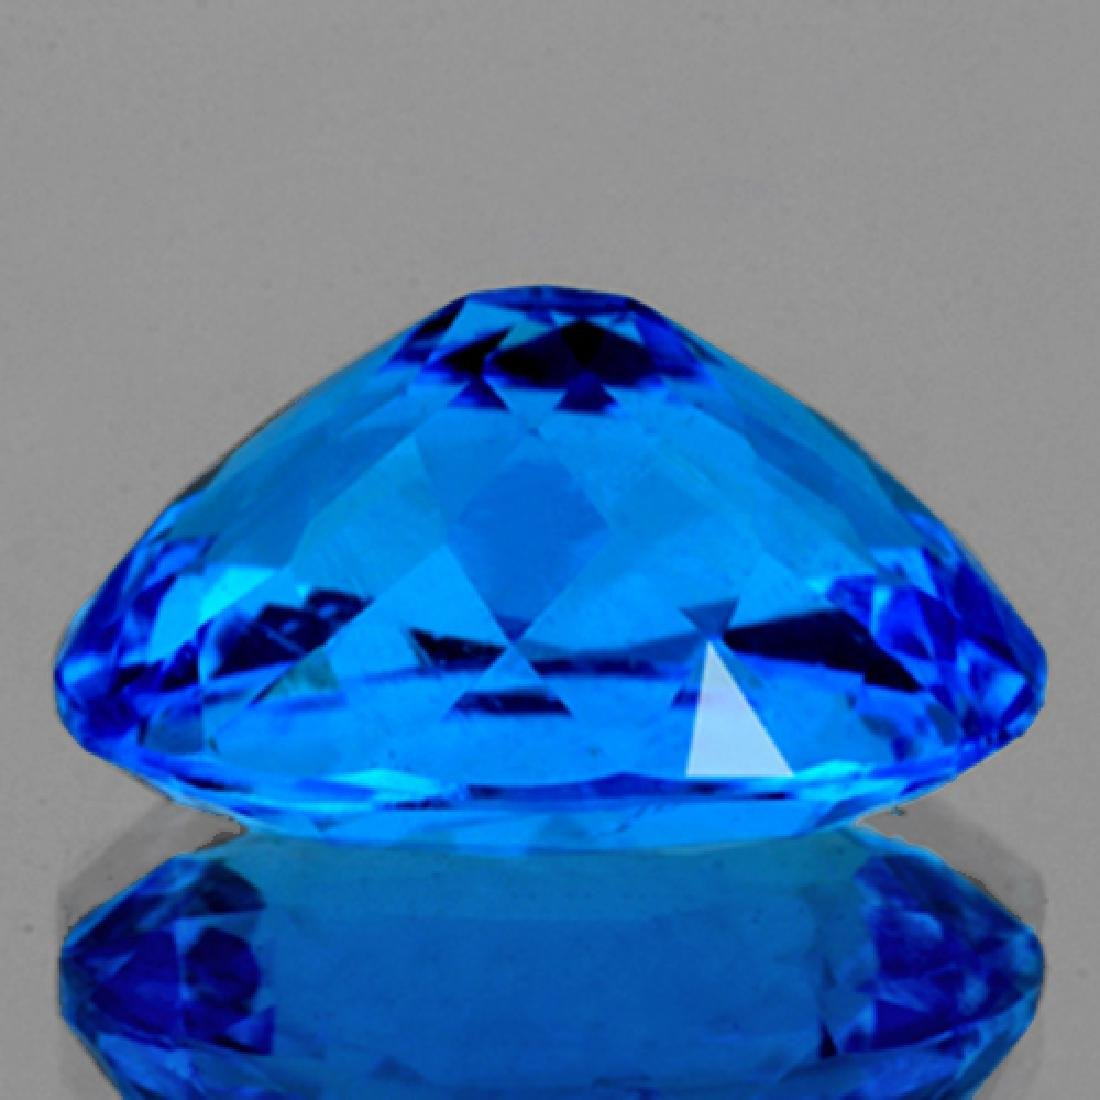 Natural Certified Swiss Topaz 30.86 Carats - Flawless - 2